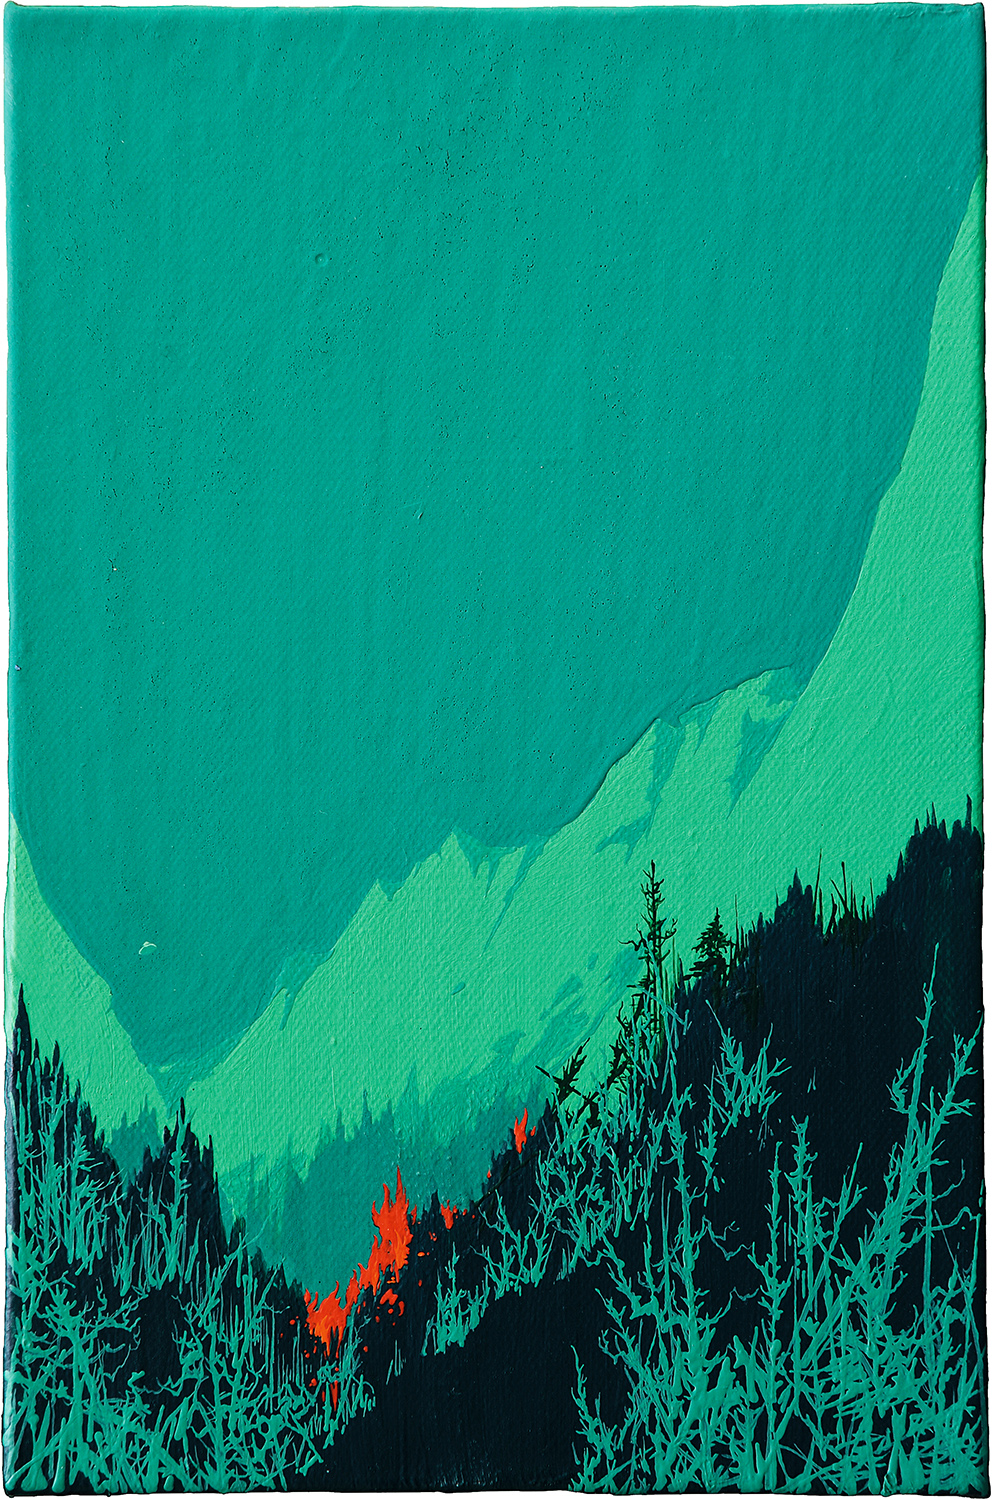 Zhou Fan 周范, Landscape 00:27 风景 00:27, 2015, Acrylic on canvas 布面丙烯, 30 x 20 cm